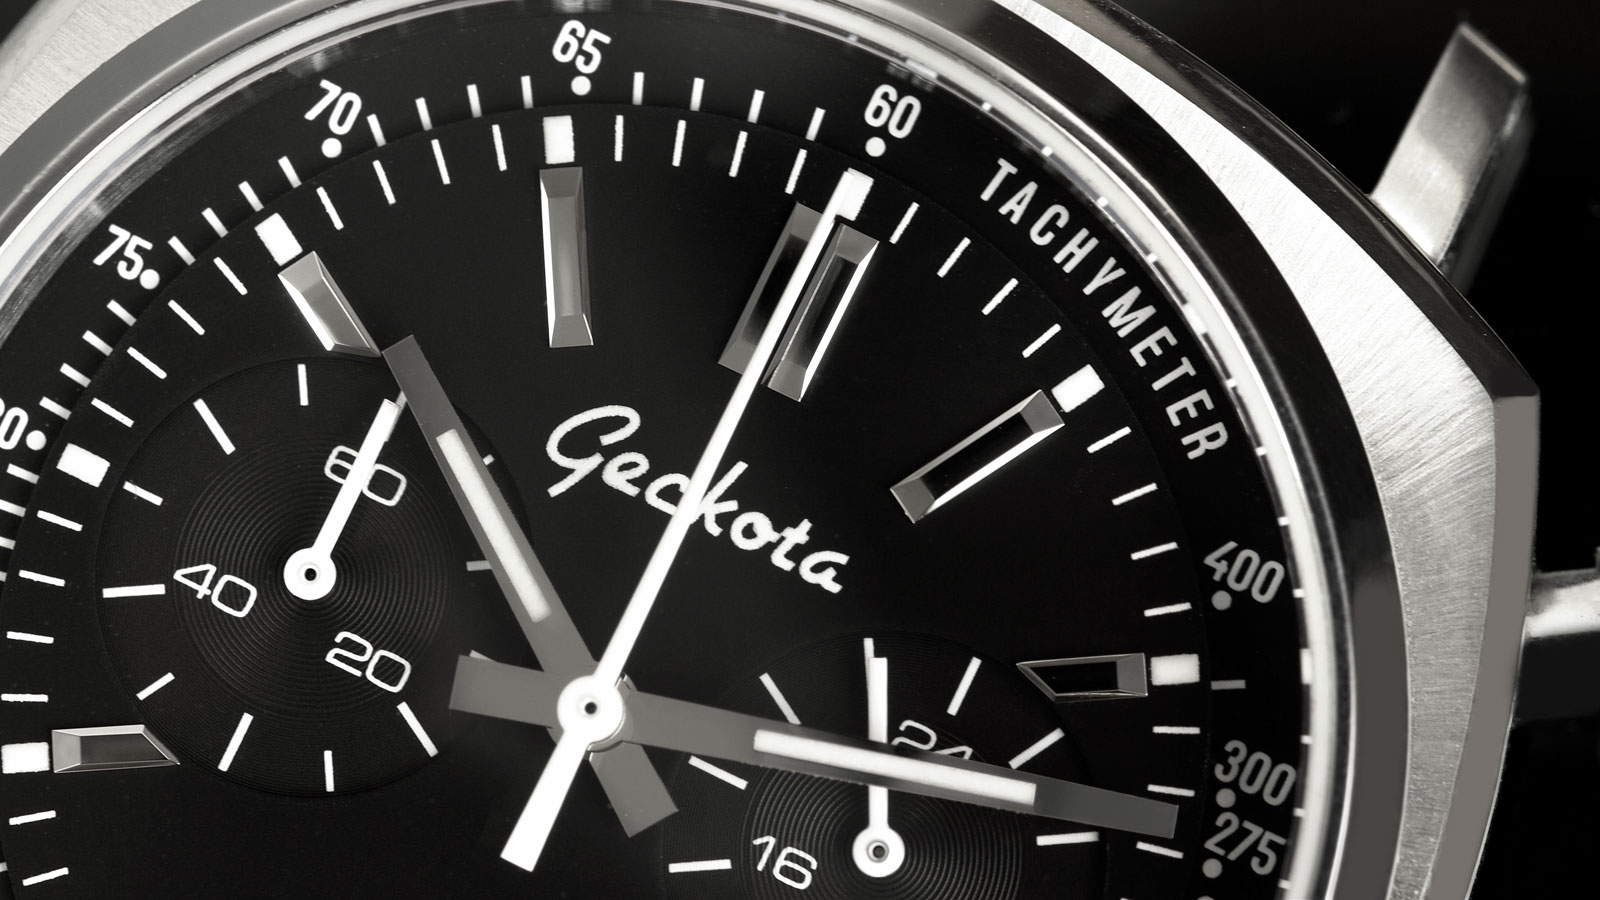 mille miglia edition chopard race baselworld watches from racing inspired car auto monochrome